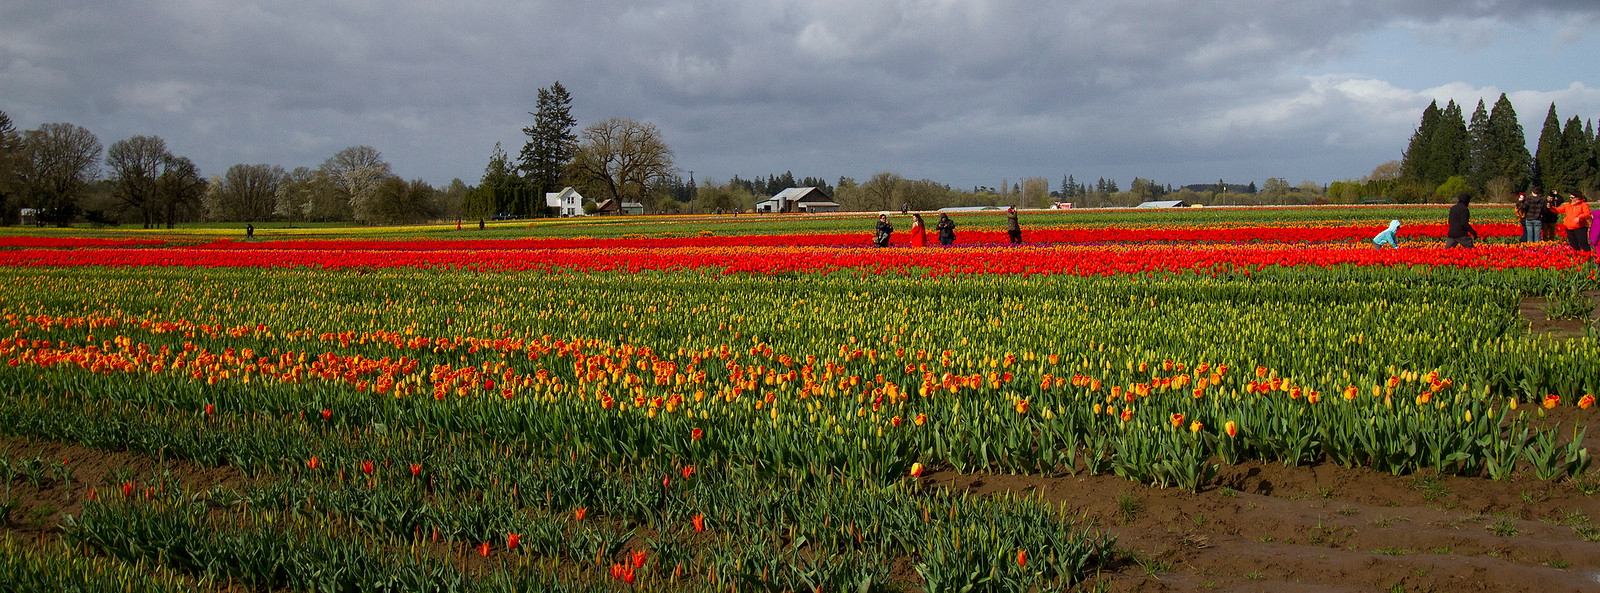 3-Strolling the tulips-IMG_0033